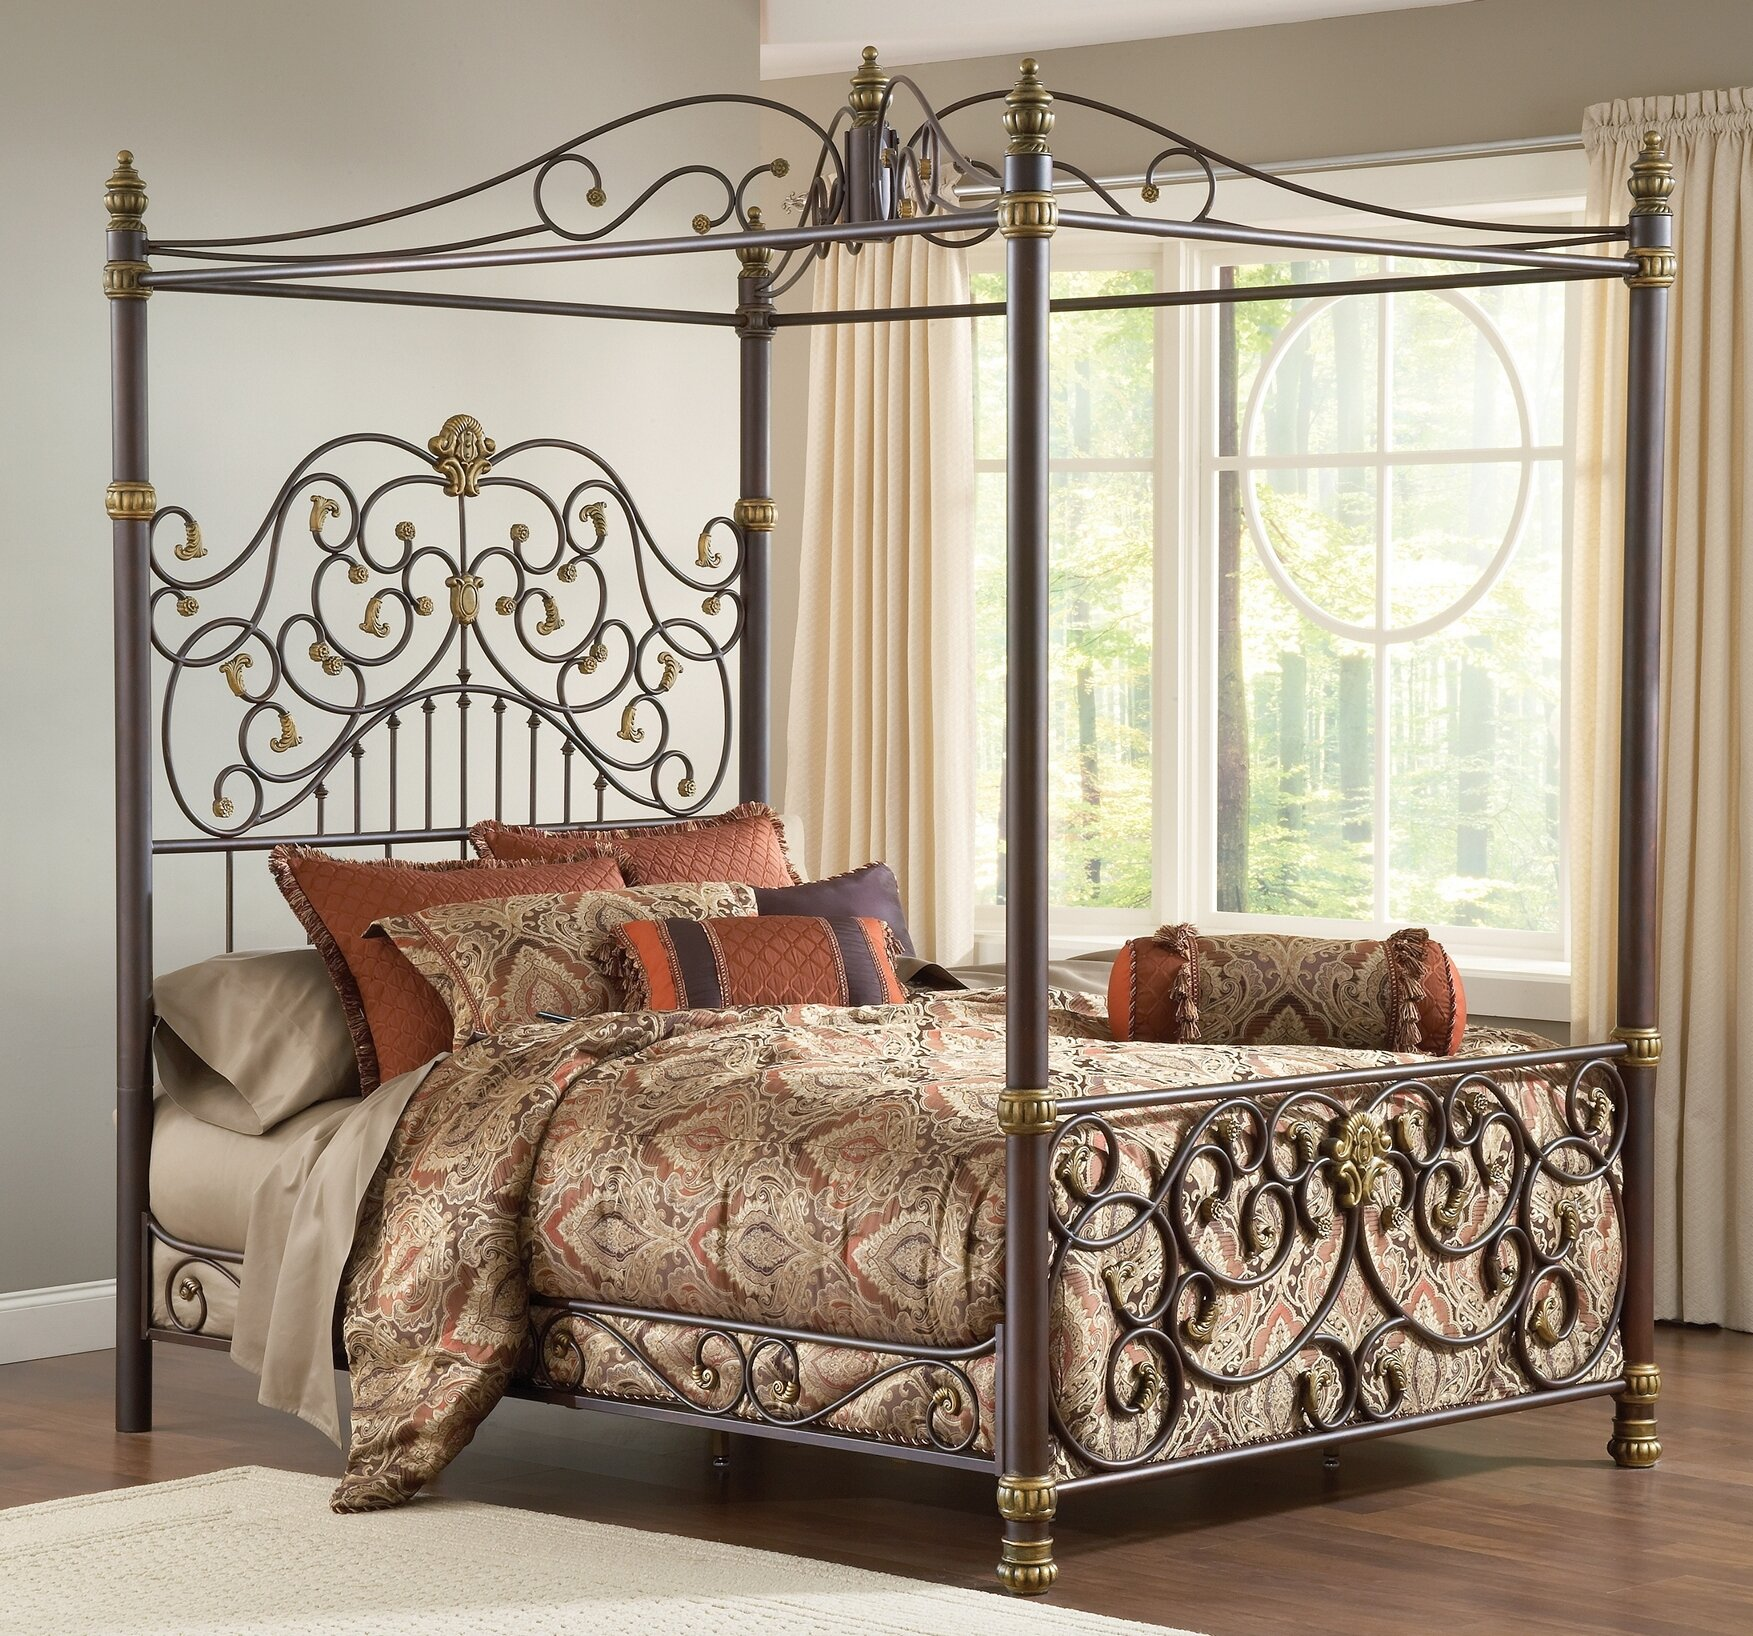 Craigslist Bedroom Sets for Elegant Bedroom Furniture Ideas: Chairs Craigslist | Craigslist Bedroom Sets | Craigslist Dining Set